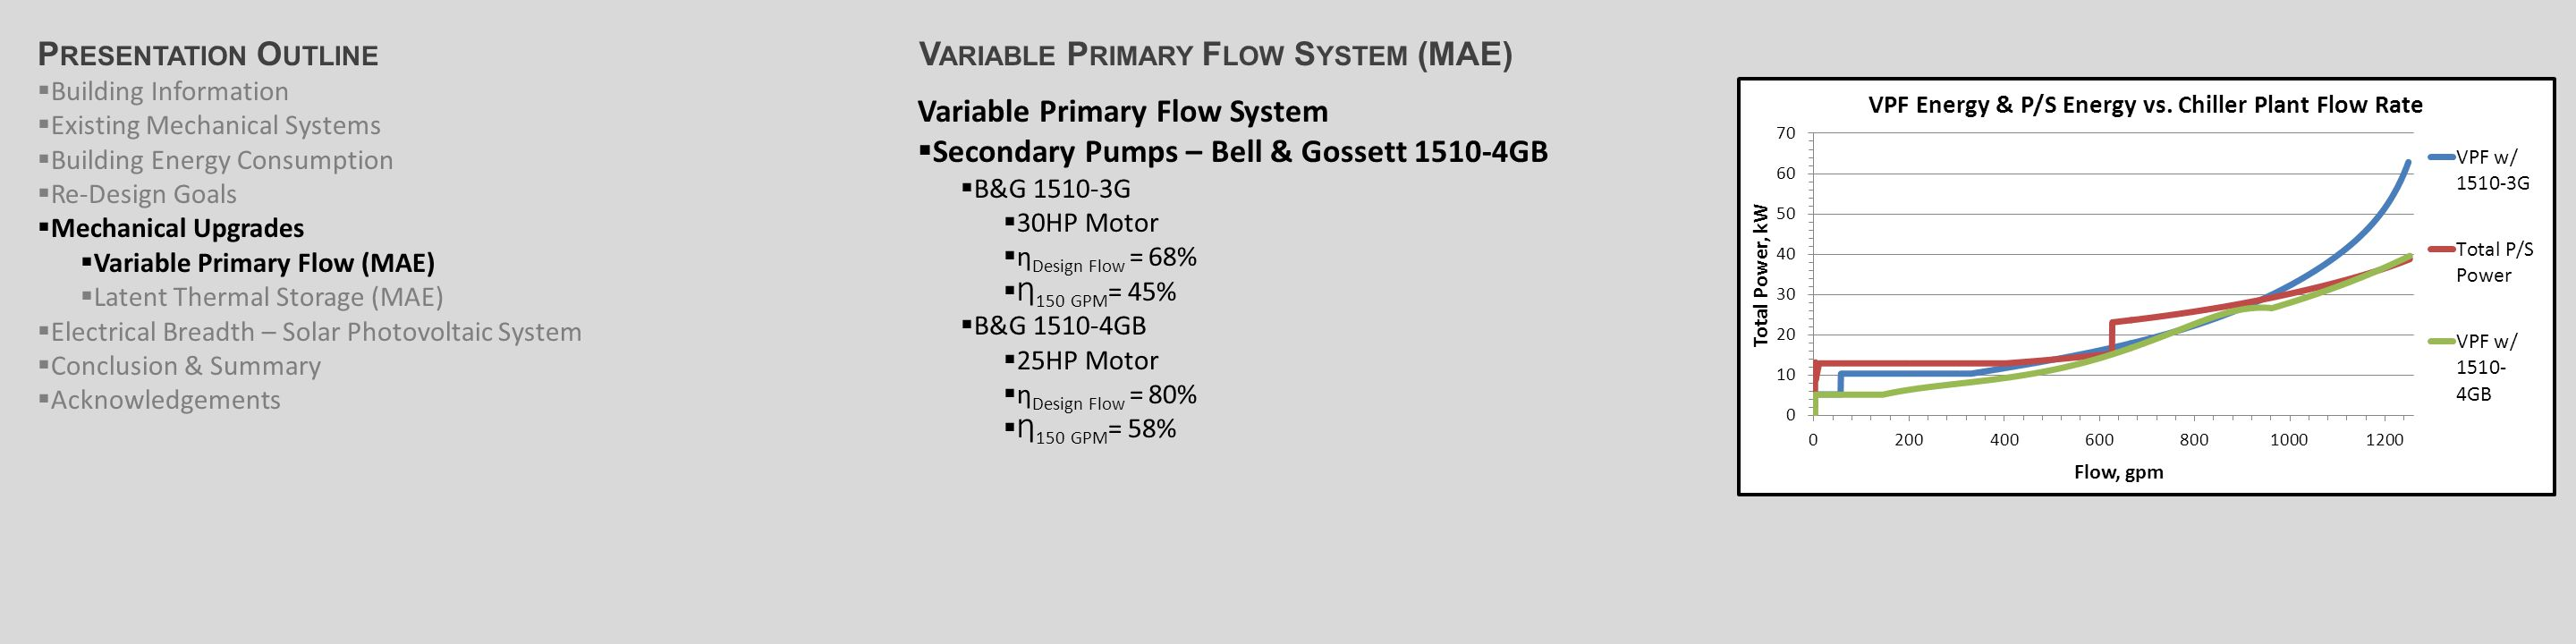 Variable Primary Flow System  Secondary Pumps – Bell & Gossett 1510-4GB  B&G 1510-3G  30HP Motor  ƞ Design Flow = 68%  Ƞ 150 GPM = 45%  B&G 1510-4GB  25HP Motor  ƞ Design Flow = 80%  Ƞ 150 GPM = 58% V ARIABLE P RIMARY F LOW S YSTEM (MAE)P RESENTATION O UTLINE  Building Information  Existing Mechanical Systems  Building Energy Consumption  Re-Design Goals  Mechanical Upgrades  Variable Primary Flow (MAE)  Latent Thermal Storage (MAE)  Electrical Breadth – Solar Photovoltaic System  Conclusion & Summary  Acknowledgements